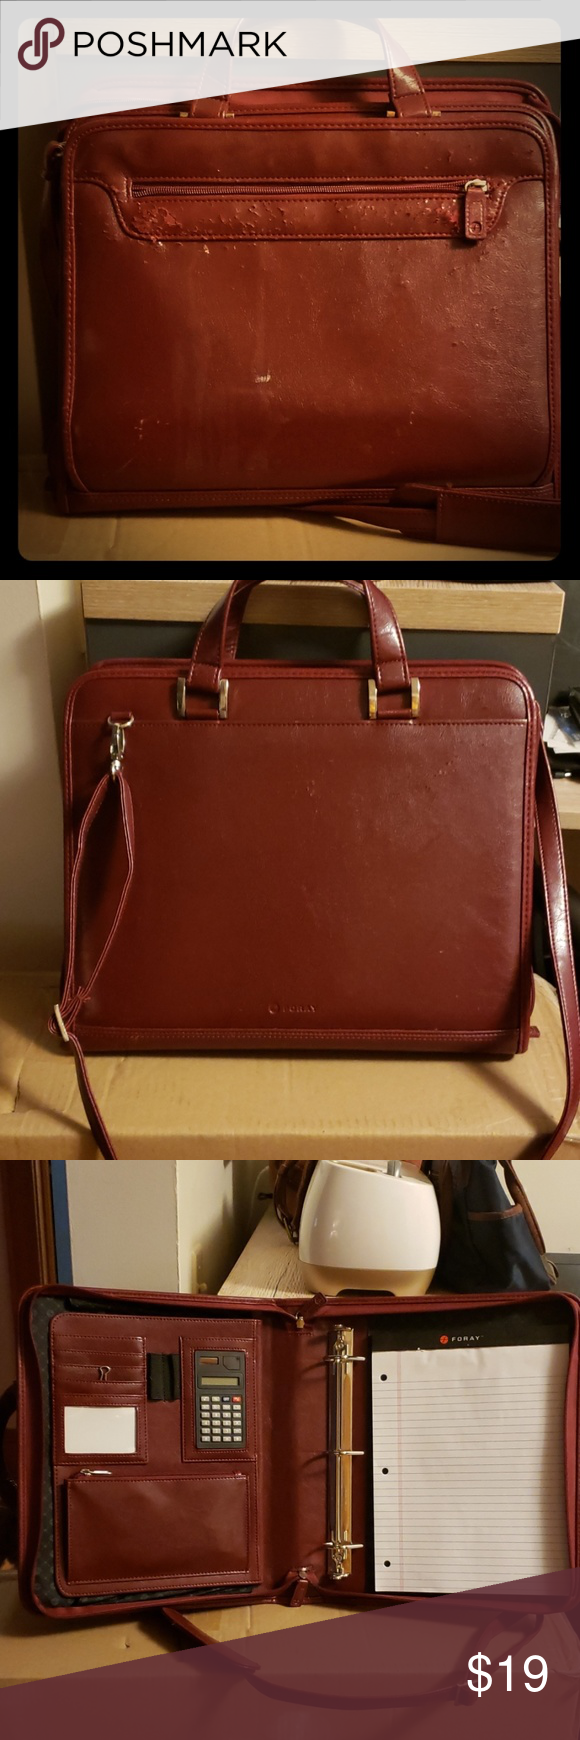 Leather Briefcase Color Burgundy